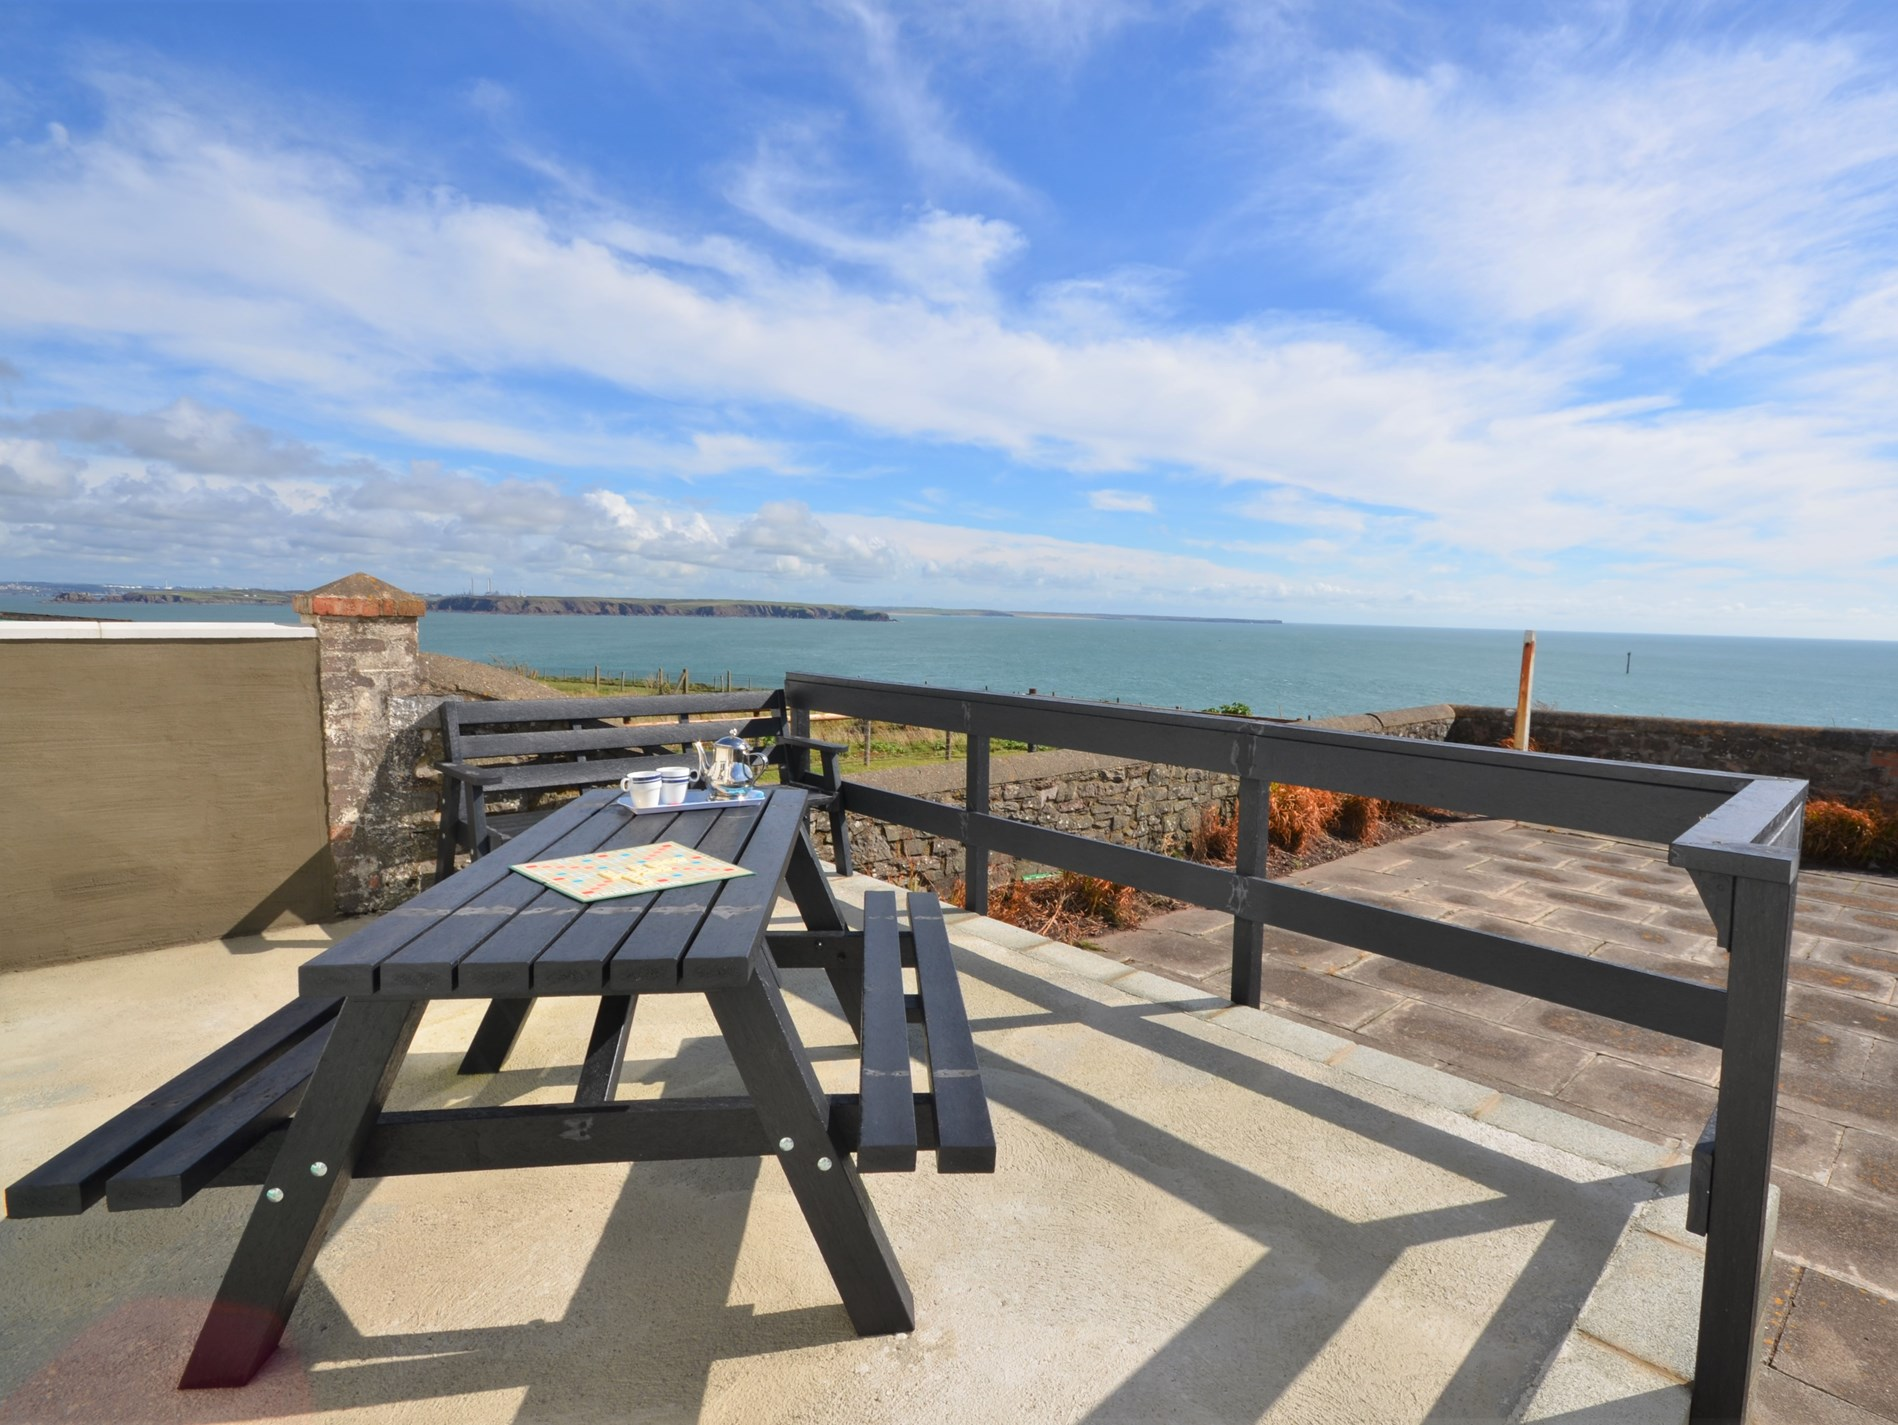 3 Bedroom House in West Wales, Pembrokeshire and the South